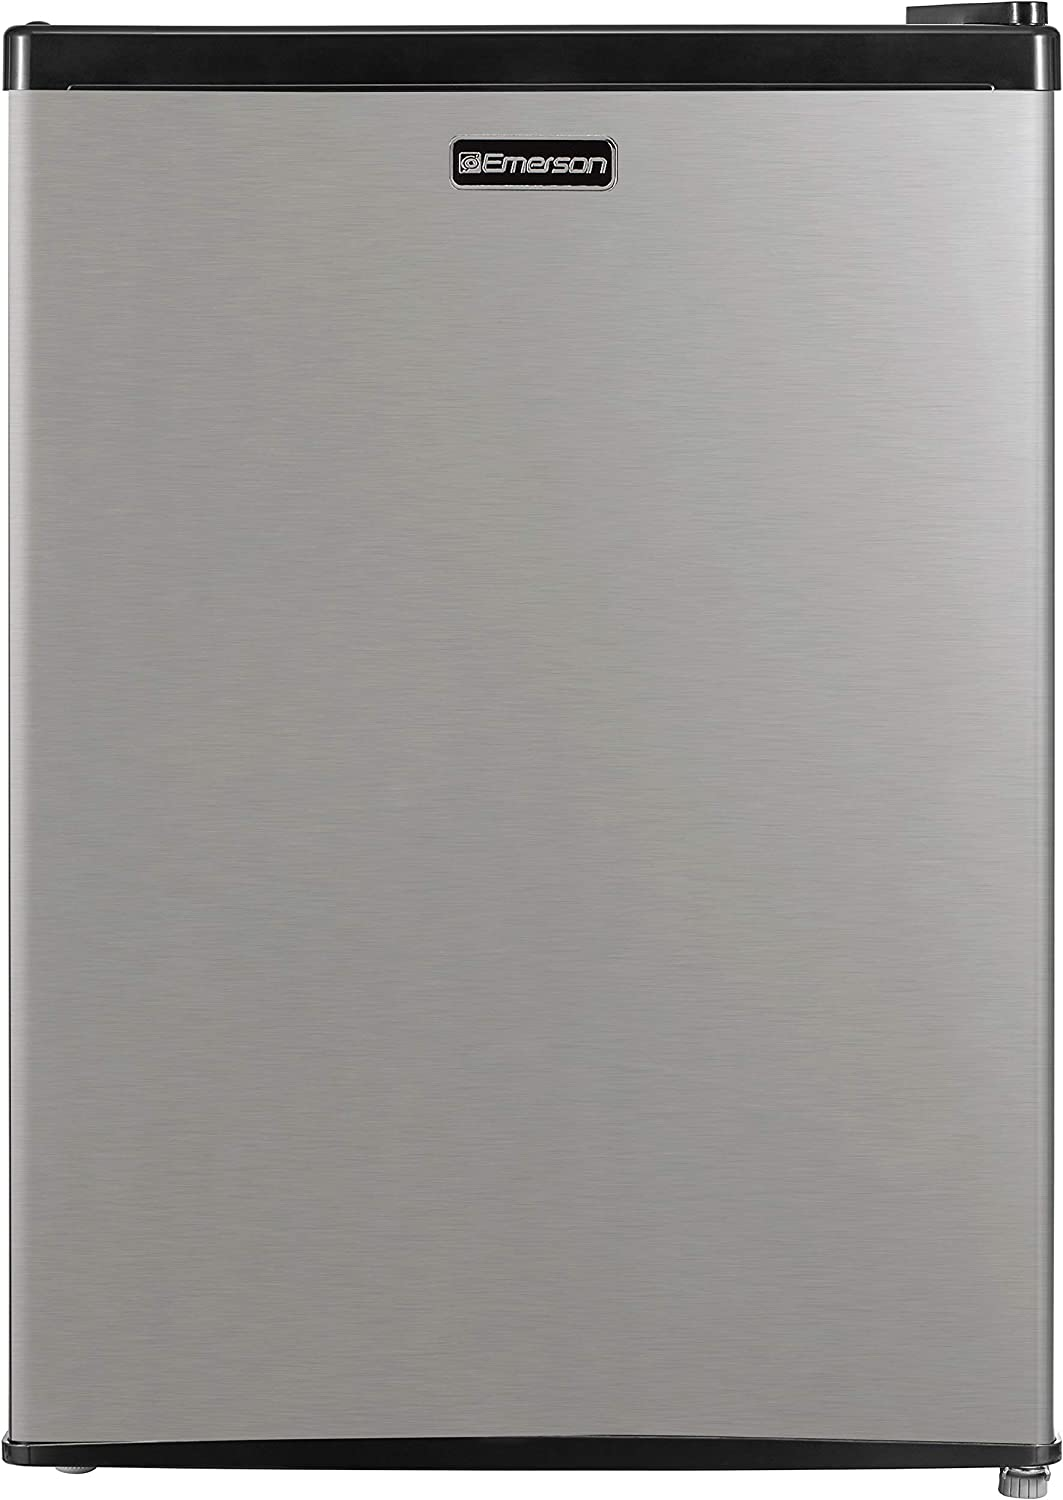 Emerson CR240BSSE 2.4-Cubic Foot Compact Single Door Refrigerator, Stainless Steel